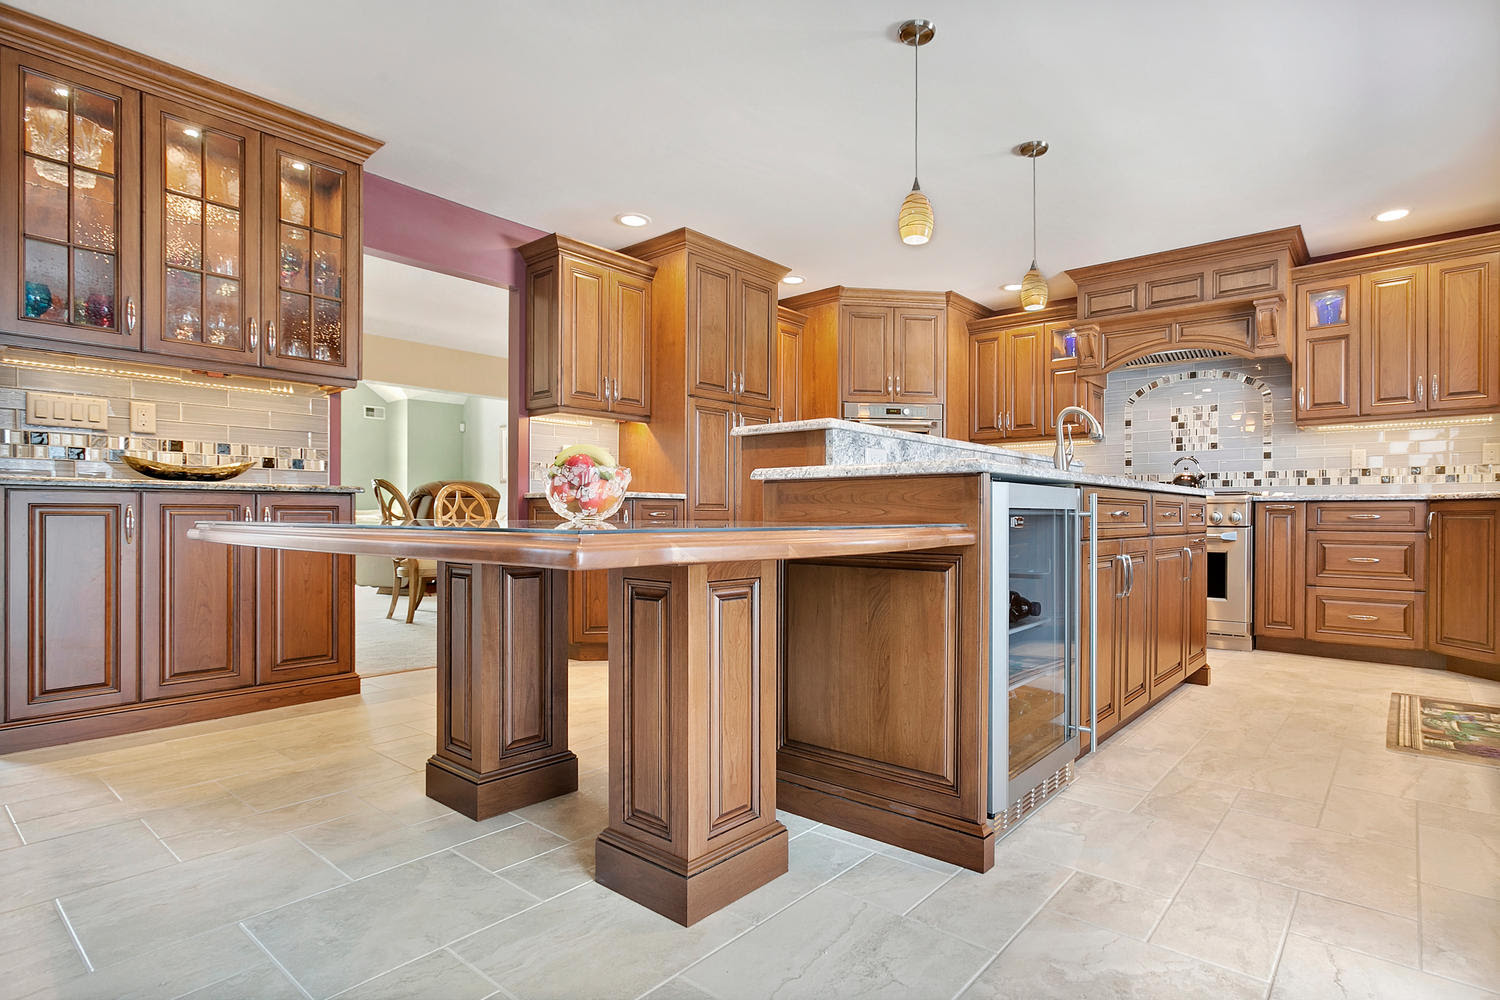 Stunning Cherry Kitchen Brick New Jersey by Design Line ...